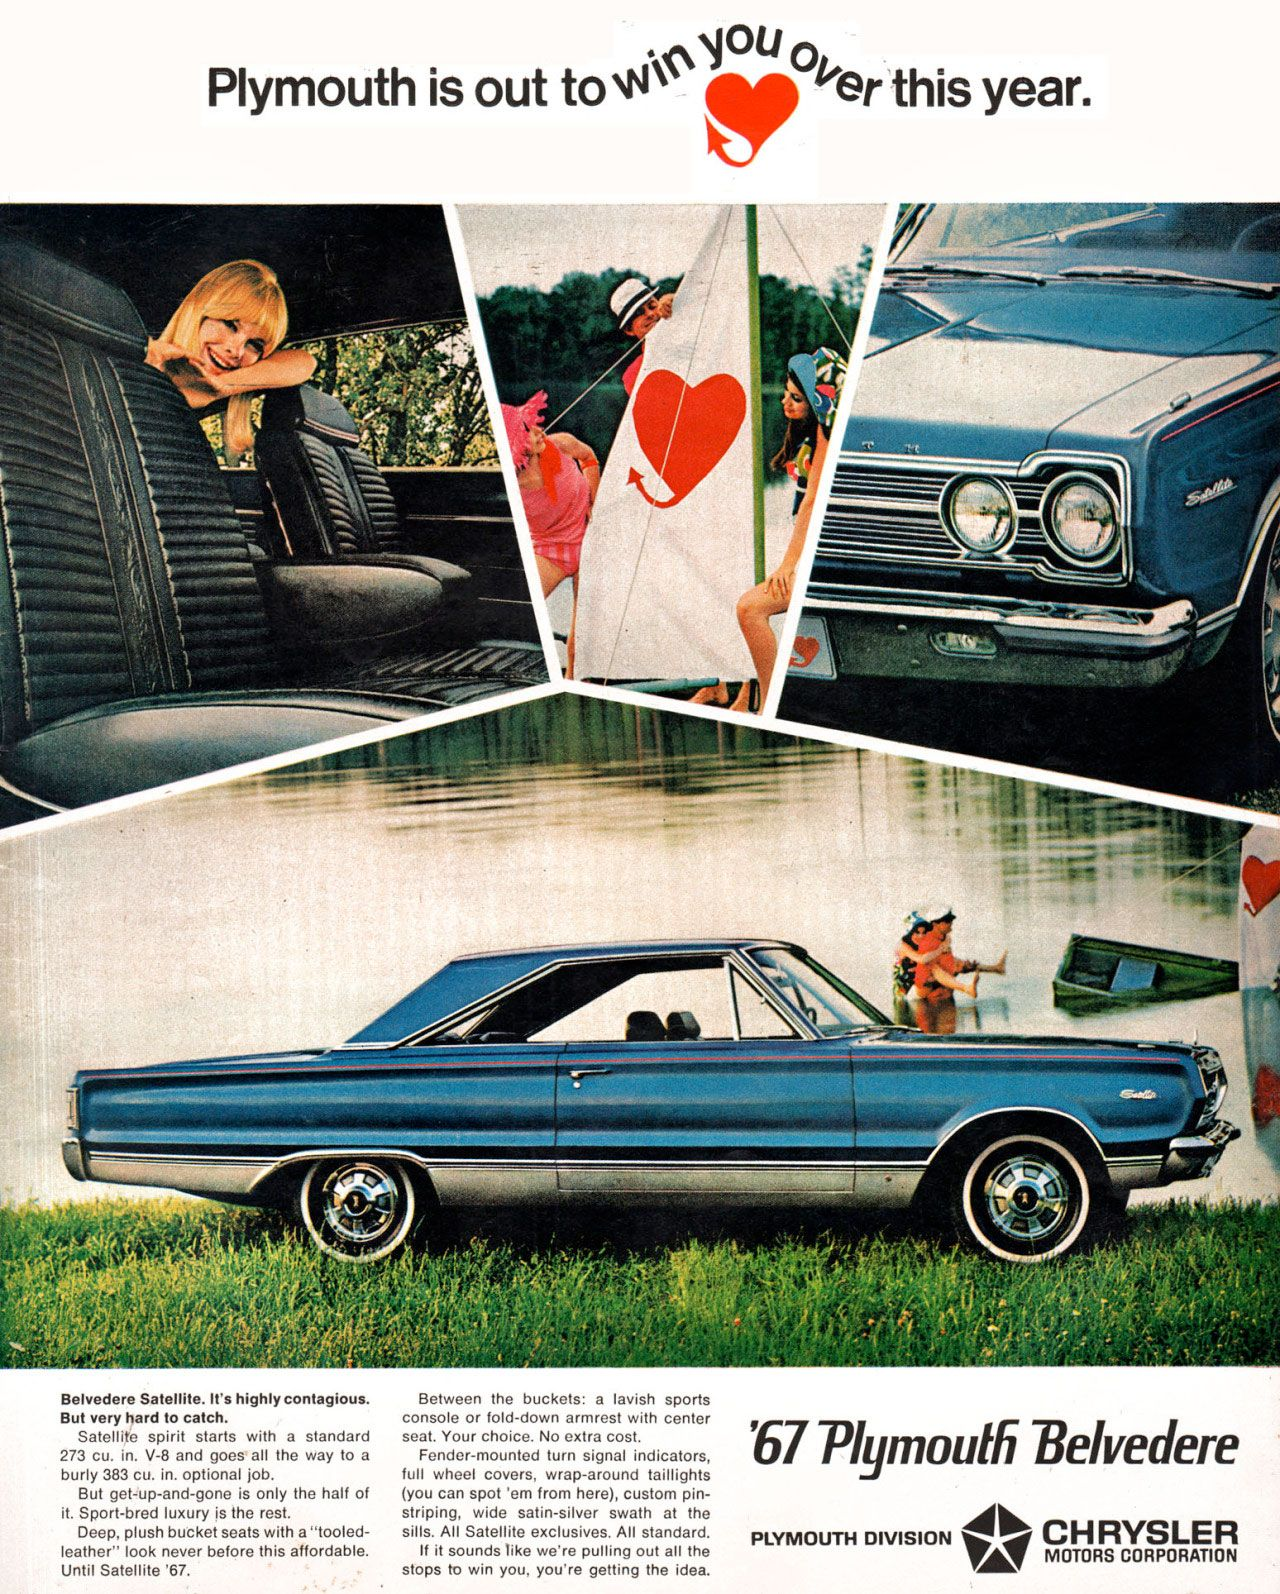 Belvedere Satellite. It's highly contagious. But very hard to catch. Satellite spirit starts with a standard 273 cu. in. V-8 and goes all the way to a burly 383 cu. in. optional job. But get-up-and-gone is only the half of it. Sport-bred luxury is the rest. Deep, plush bucket seats with a 'tooled-leather' look never before this affordable. Until Satellite '67. Between the buckets: a lavish sports console or fold-down armrest with center seat. Your choice. No extra cost. Fender-mounted turn signal indicators, full wheel covers, wrap-around taillights (you can spot 'ern from here), custom pin-striping, wide satin-silver swath at the sills. All Satellite exclusives. All standard. If it sounds like we're pulling out all the stops to win you, you're getting the idea. '67 Plymouth Belvedere.